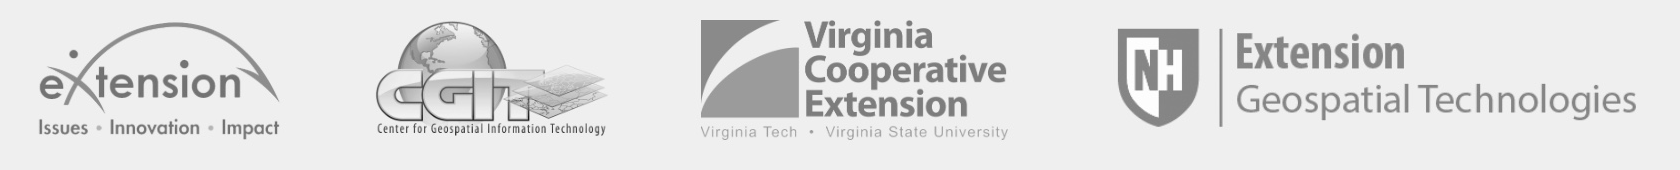 National Extension Web-mapping Tool logos